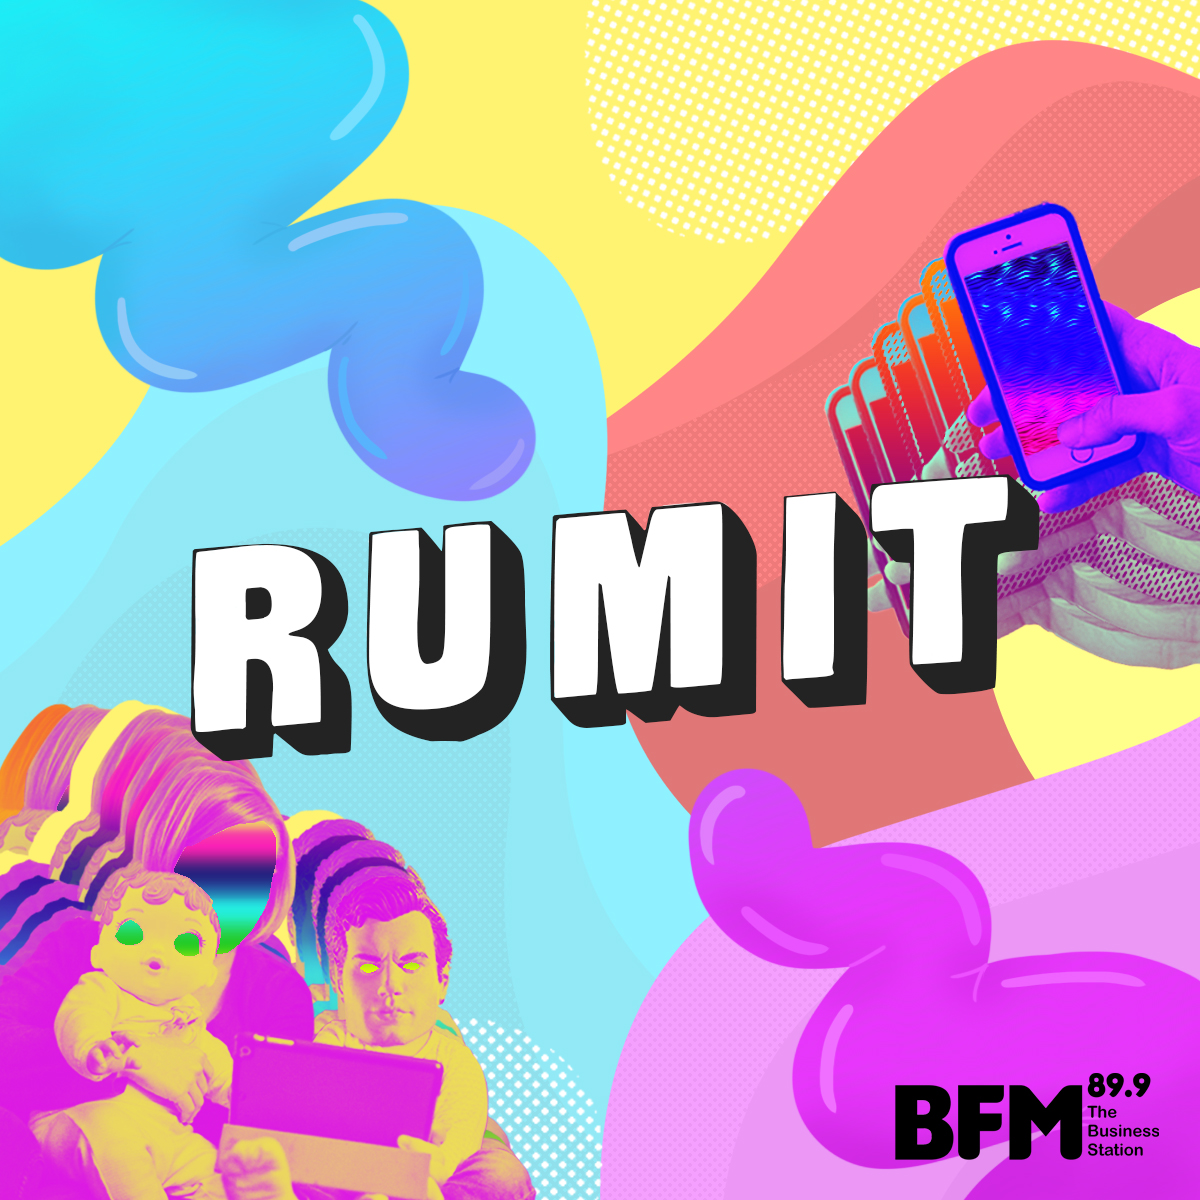 RUMIT_thumbnail_ with logo.jpg